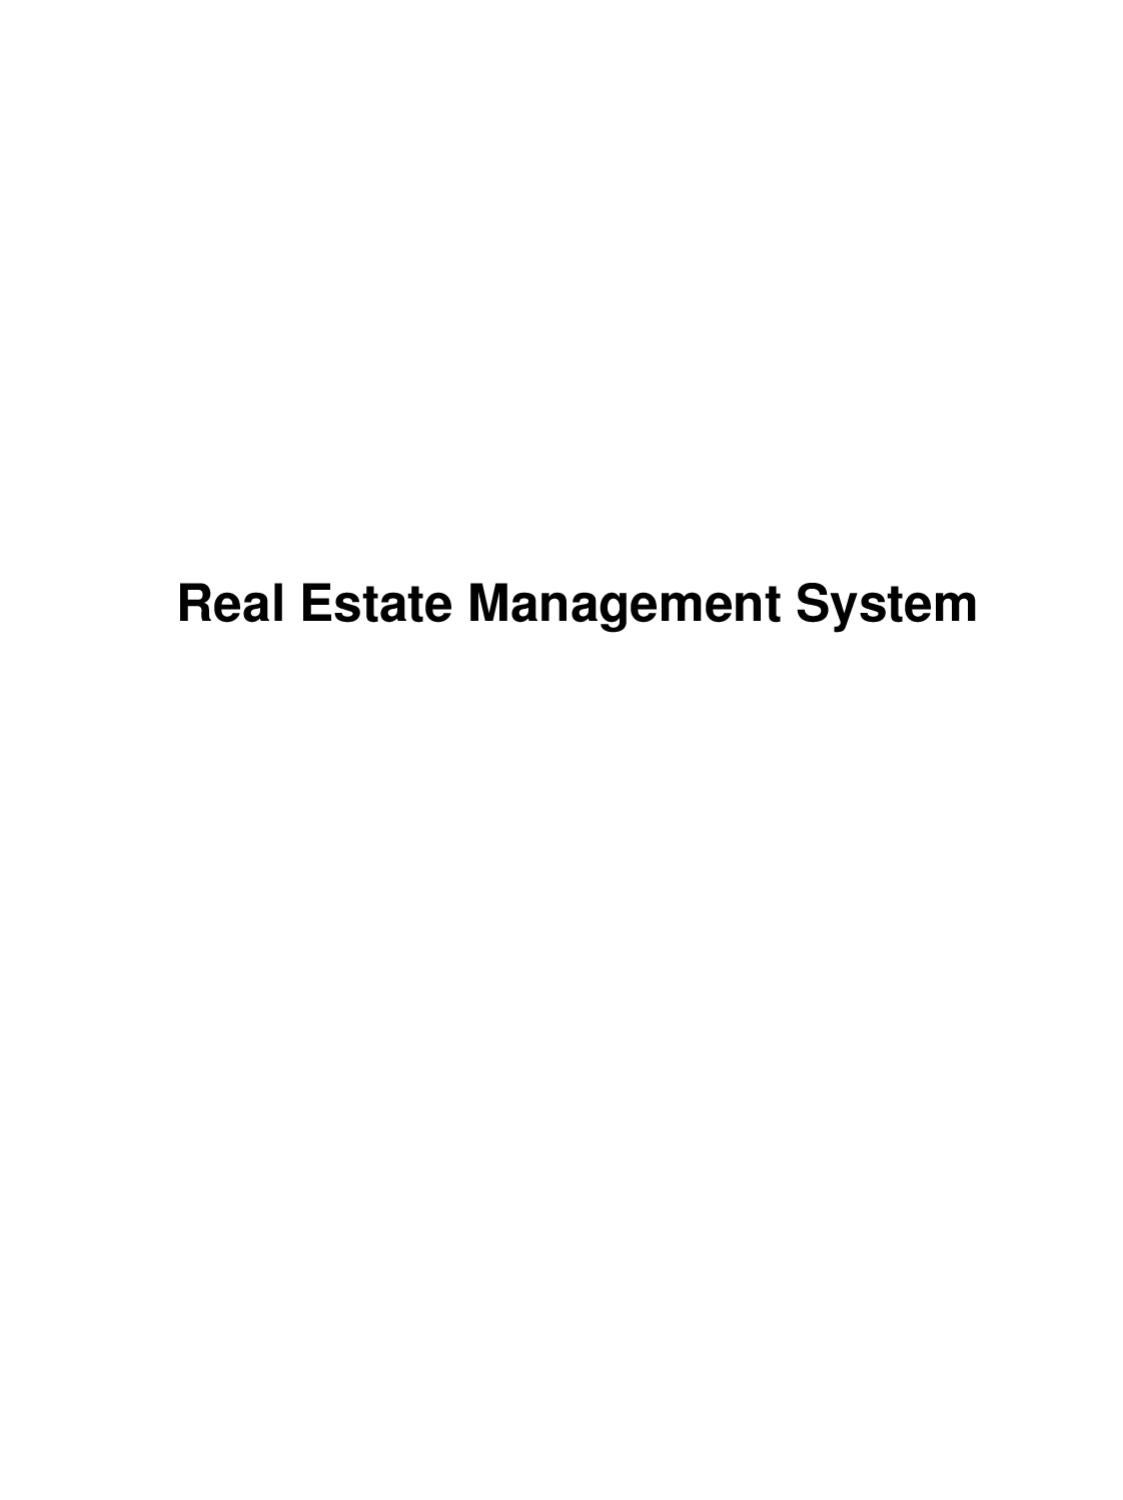 Real Estate Management System By Readymade Projects